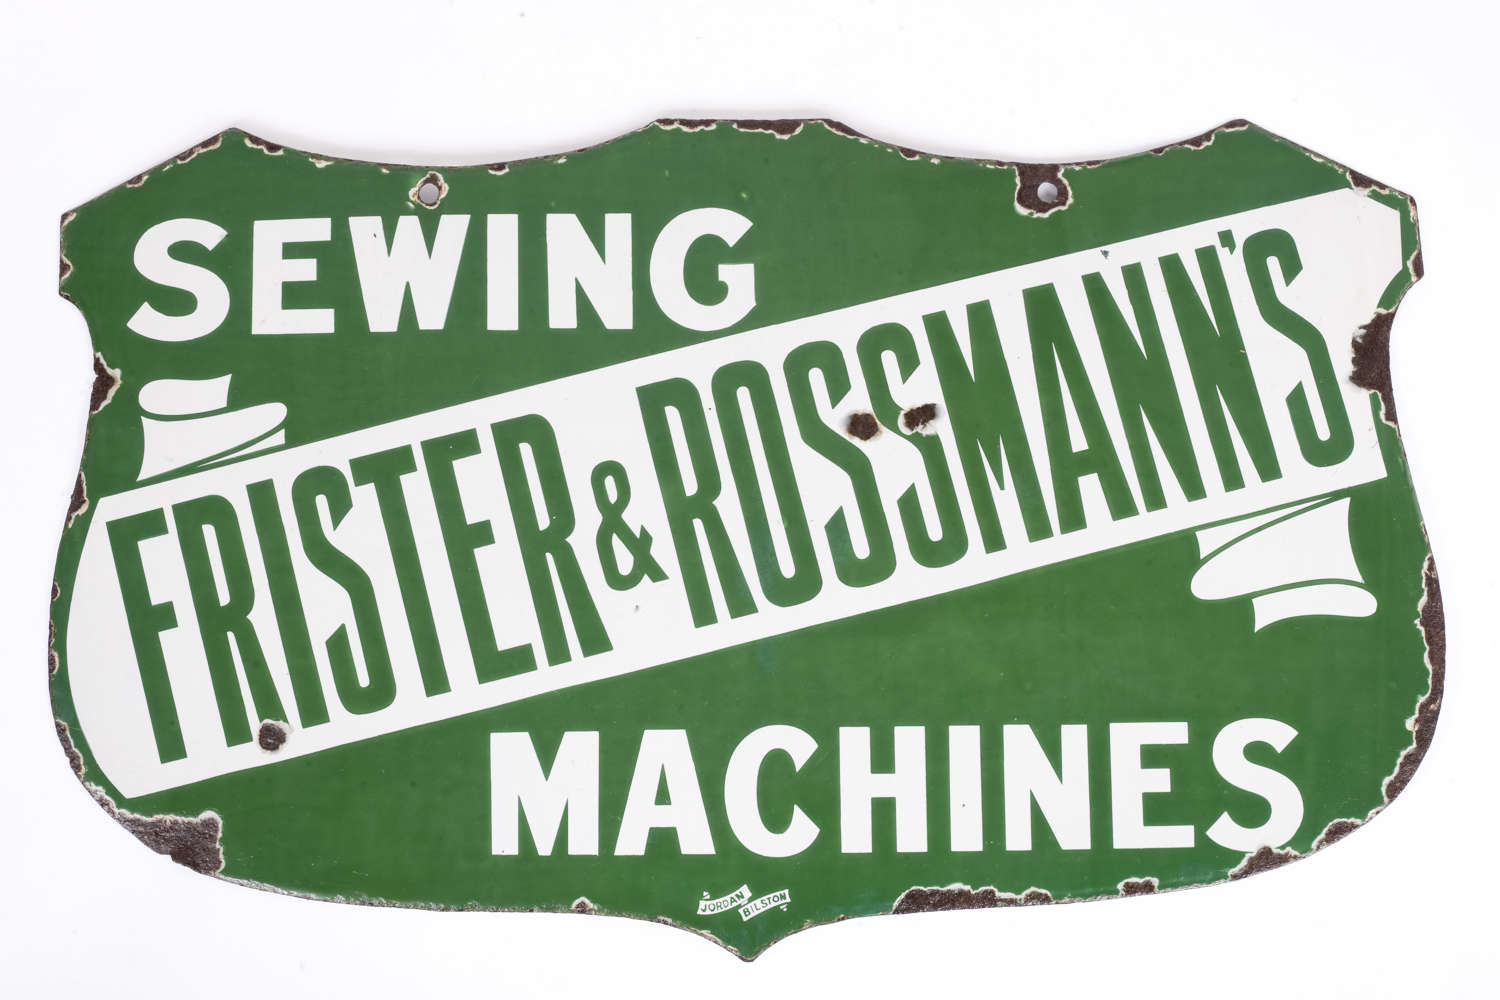 Original enamel sign for Frister & Rossmann's sewing machines